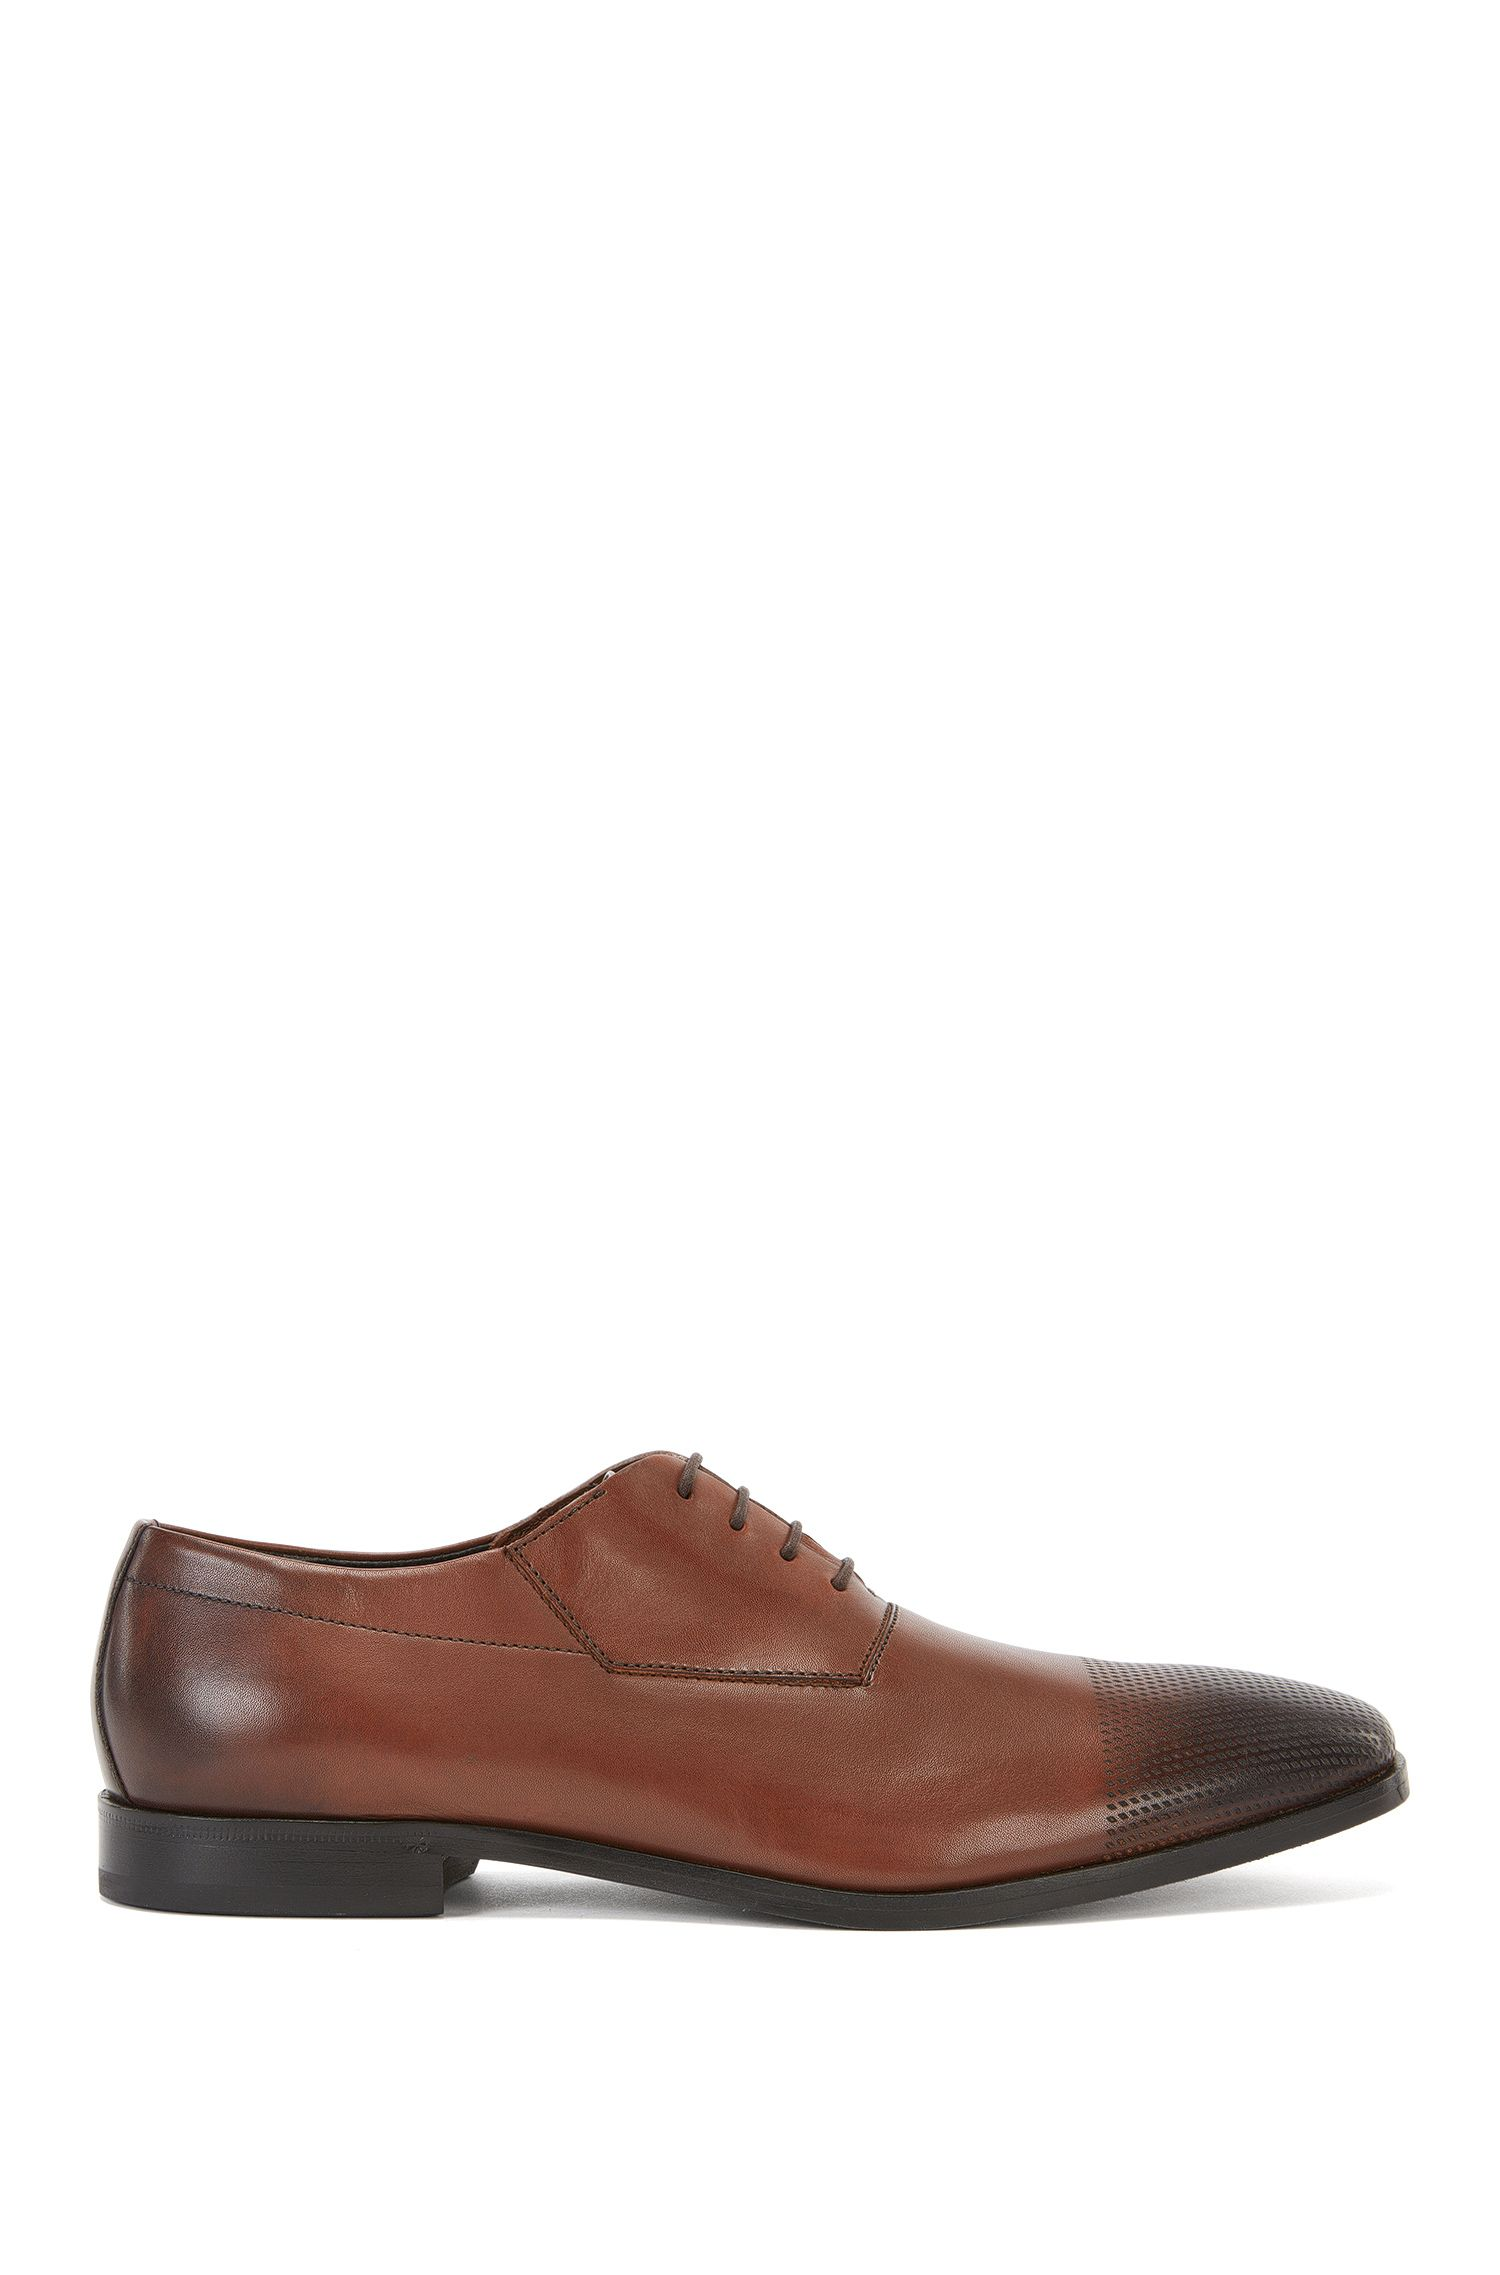 'Square Oxfr Srls' | Calfskin Perforated Toe Oxford Dress Shoes